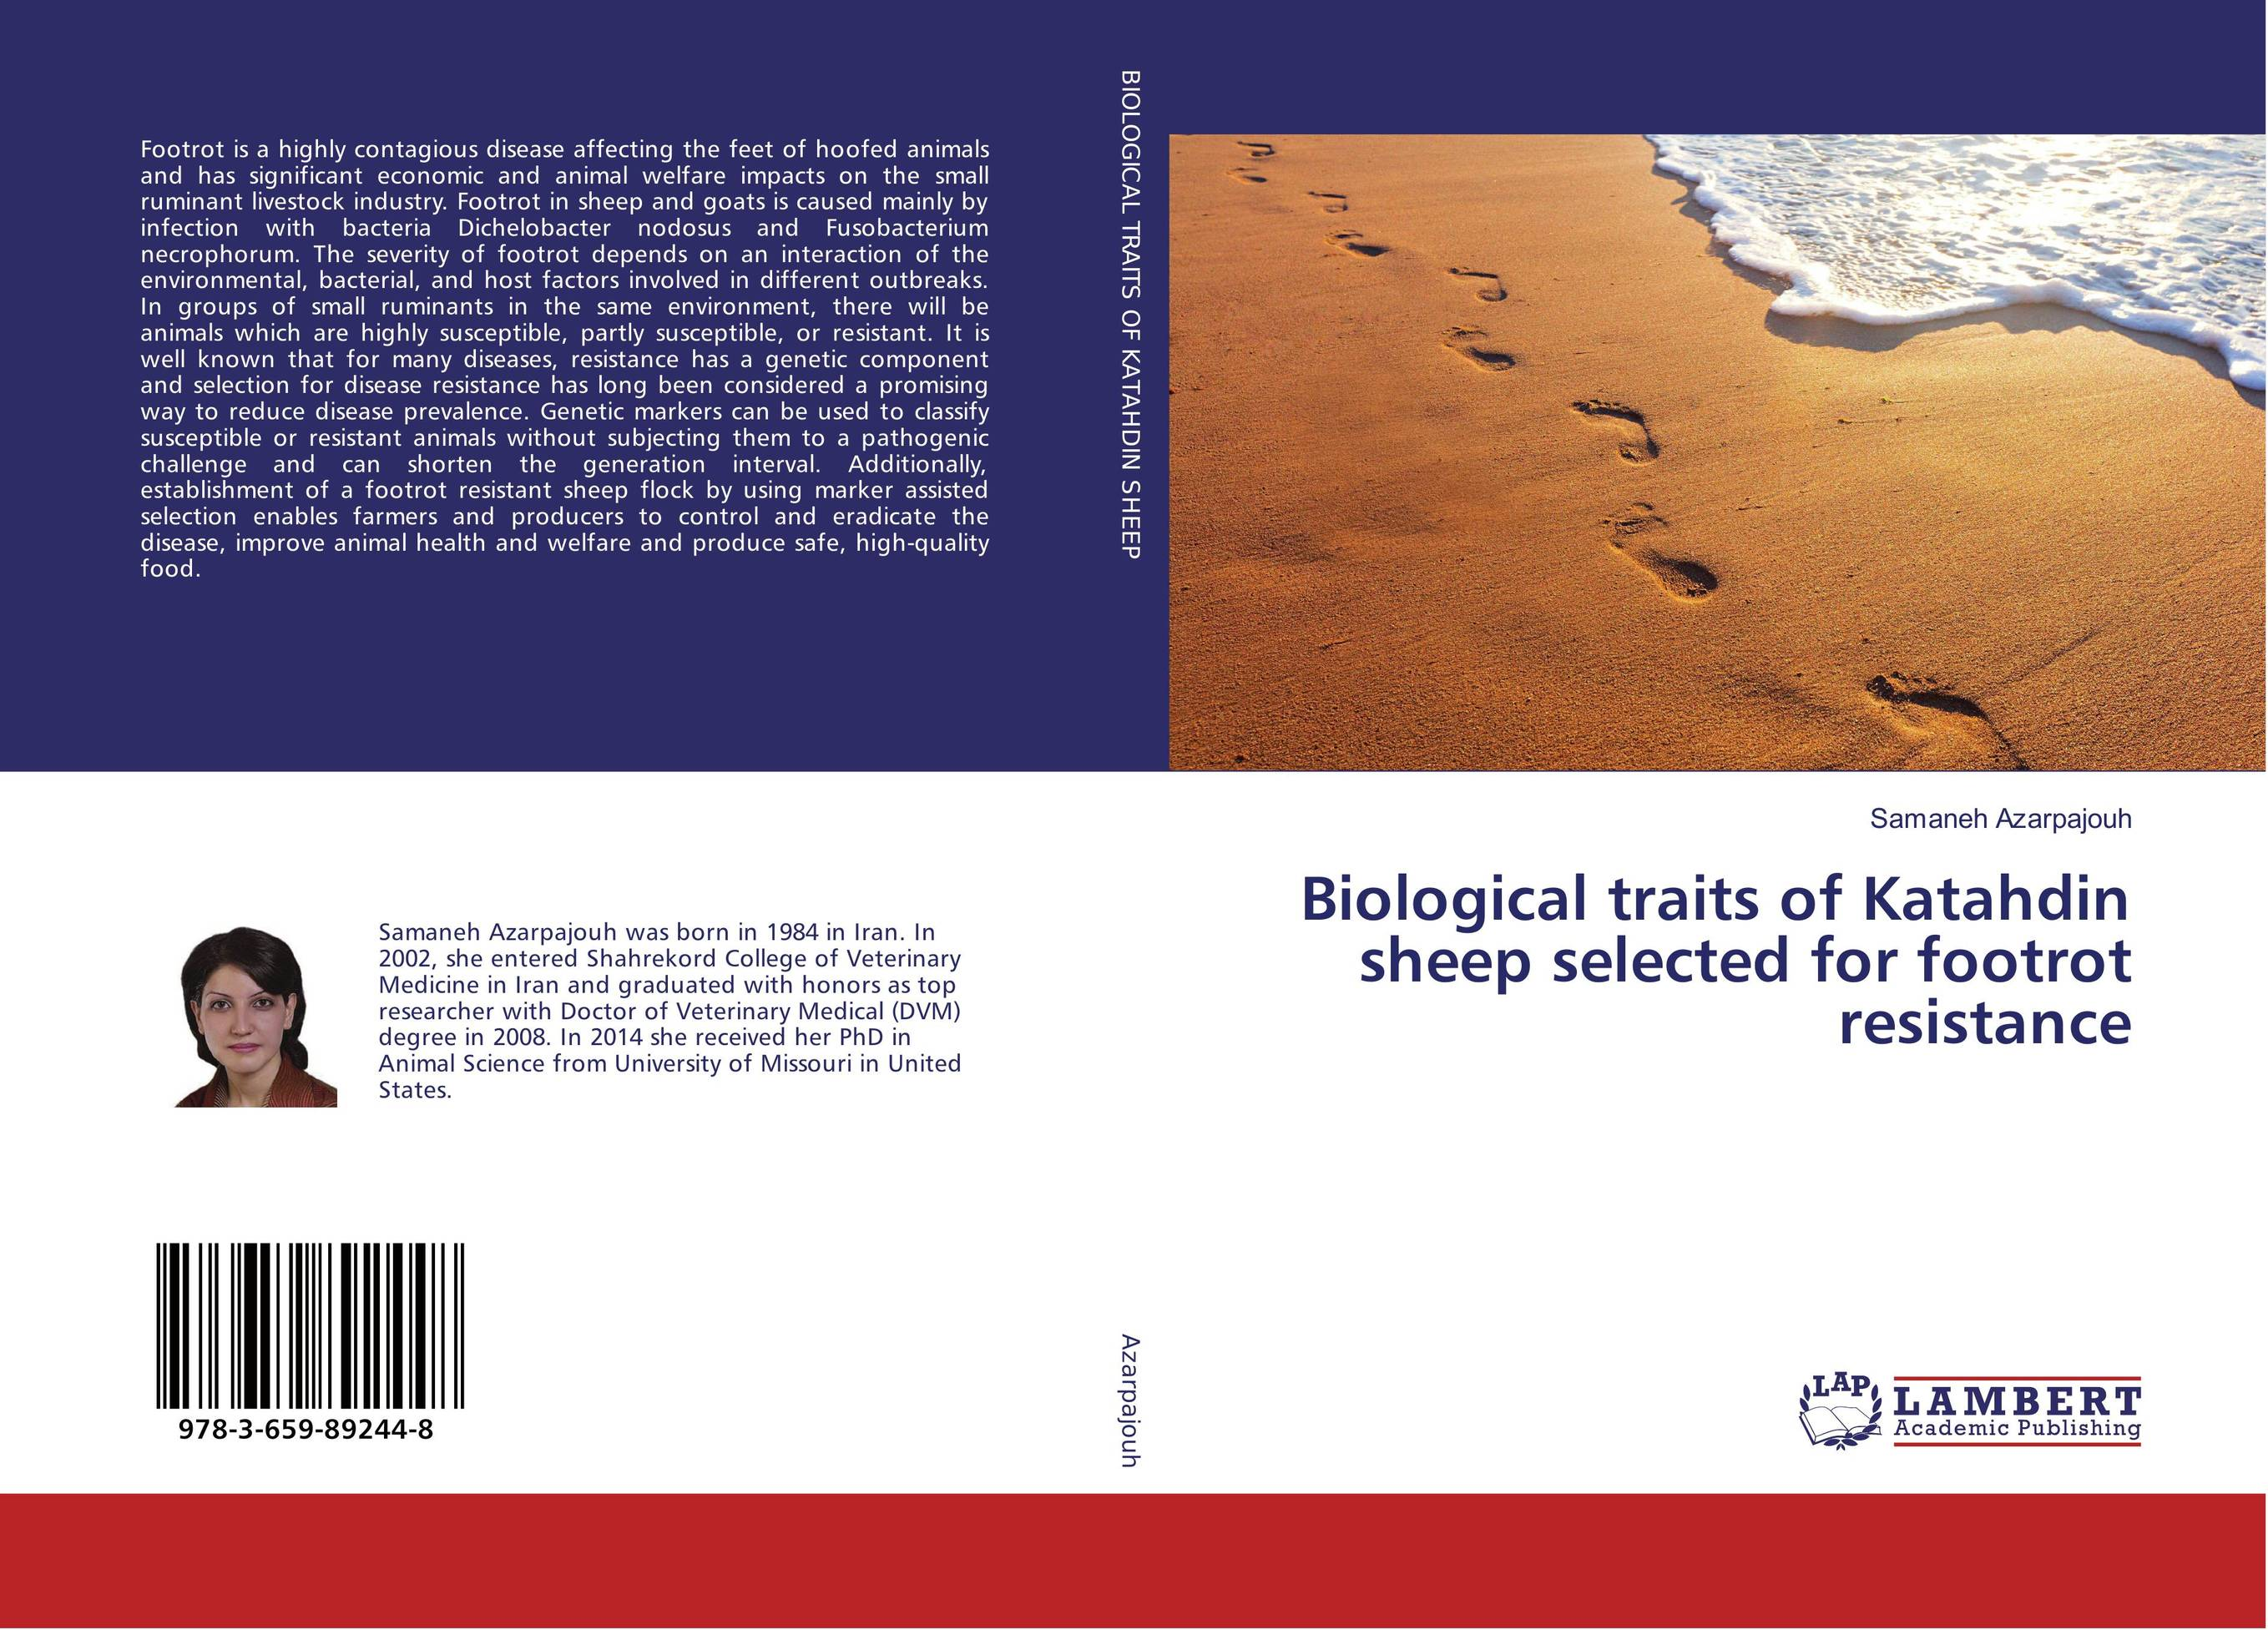 Biological traits of Katahdin sheep selected for footrot resistance lesions of skin of sheep and goats due to external parasites